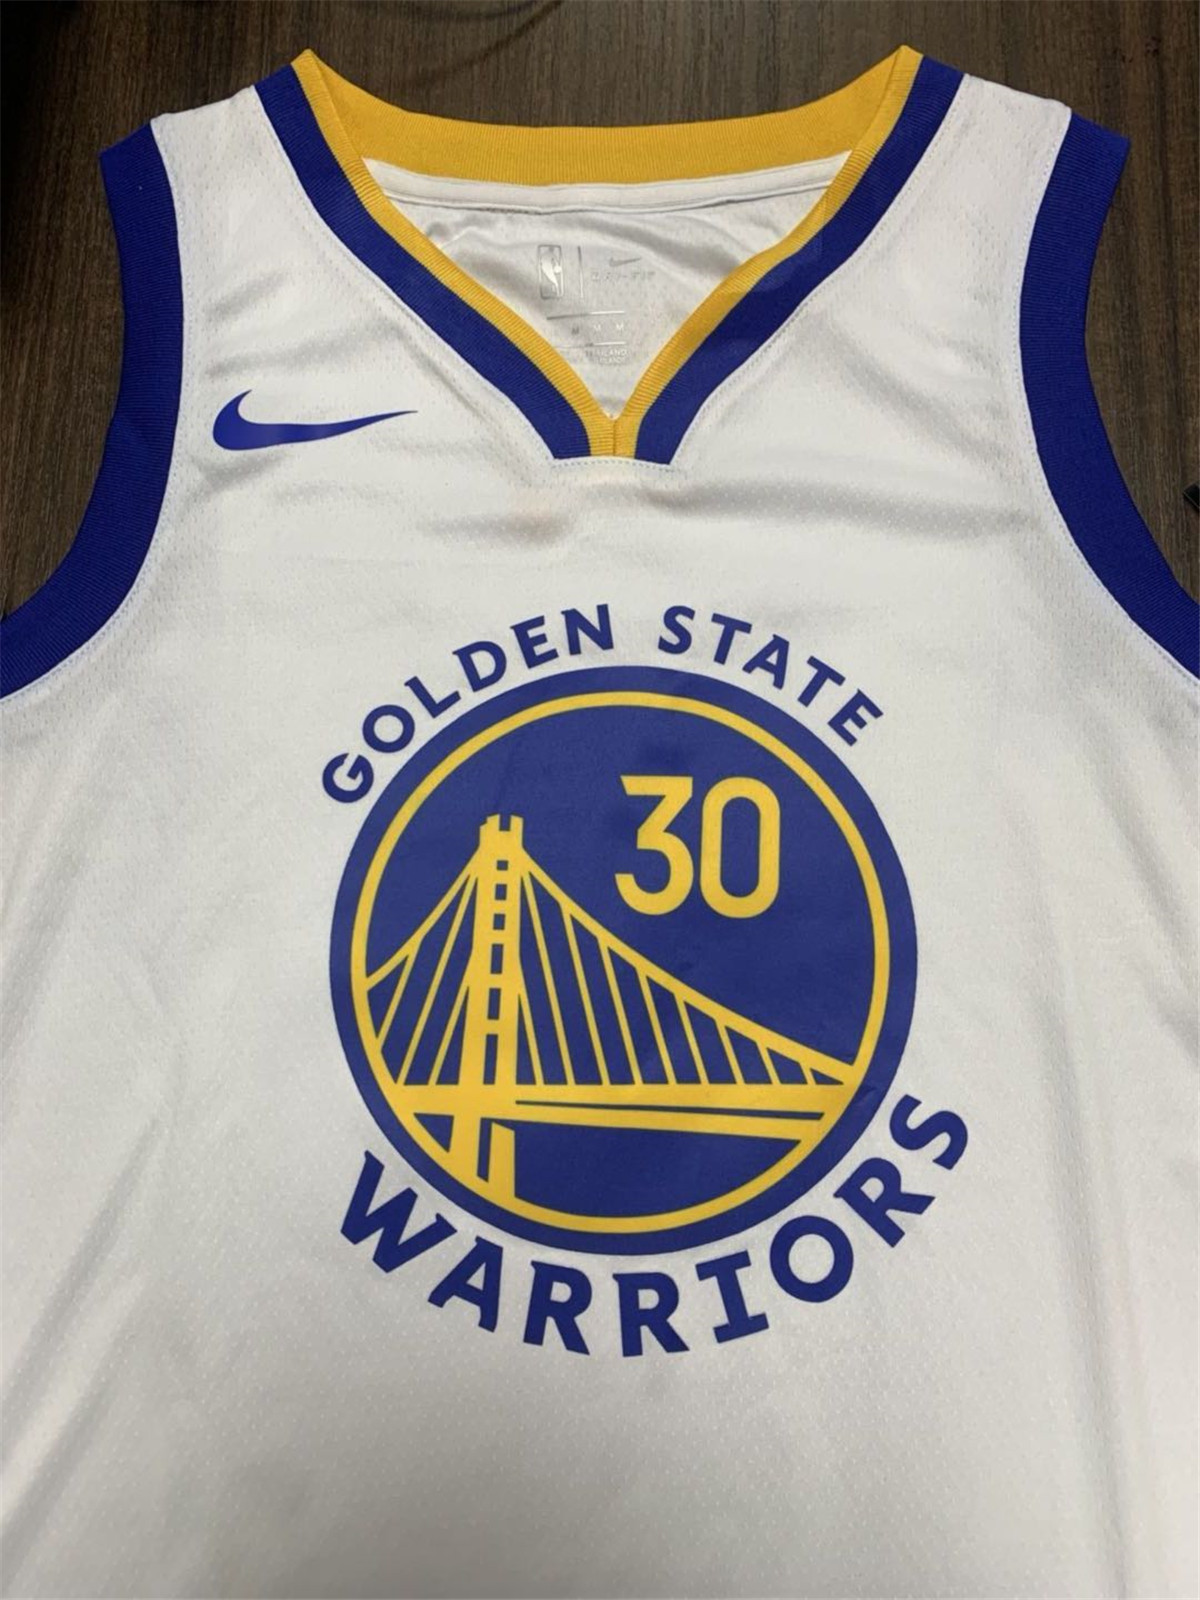 Swingman Stephen Curry #30 Golden State Warriors Jersey 2019/20 By Nike White